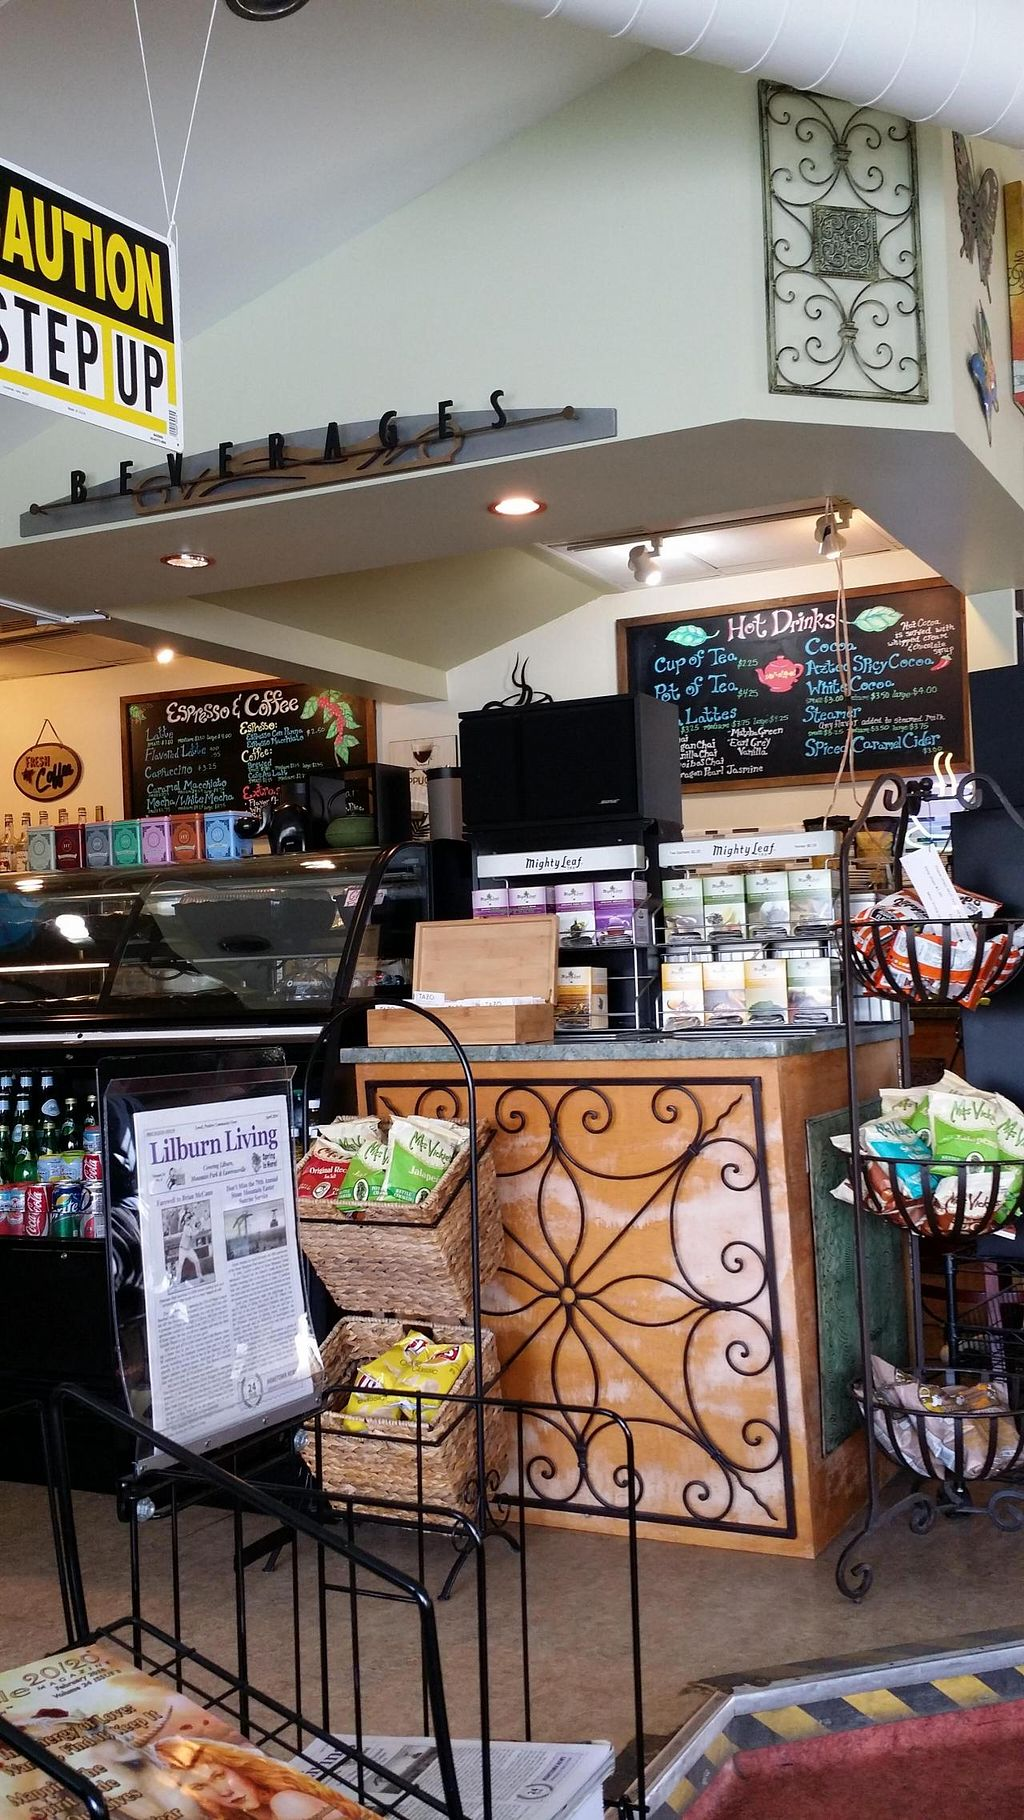 """Photo of Alcove Coffee  by <a href=""""/members/profile/Jofor4"""">Jofor4</a> <br/>Alcove Coffee  <br/> April 3, 2014  - <a href='/contact/abuse/image/32445/66956'>Report</a>"""